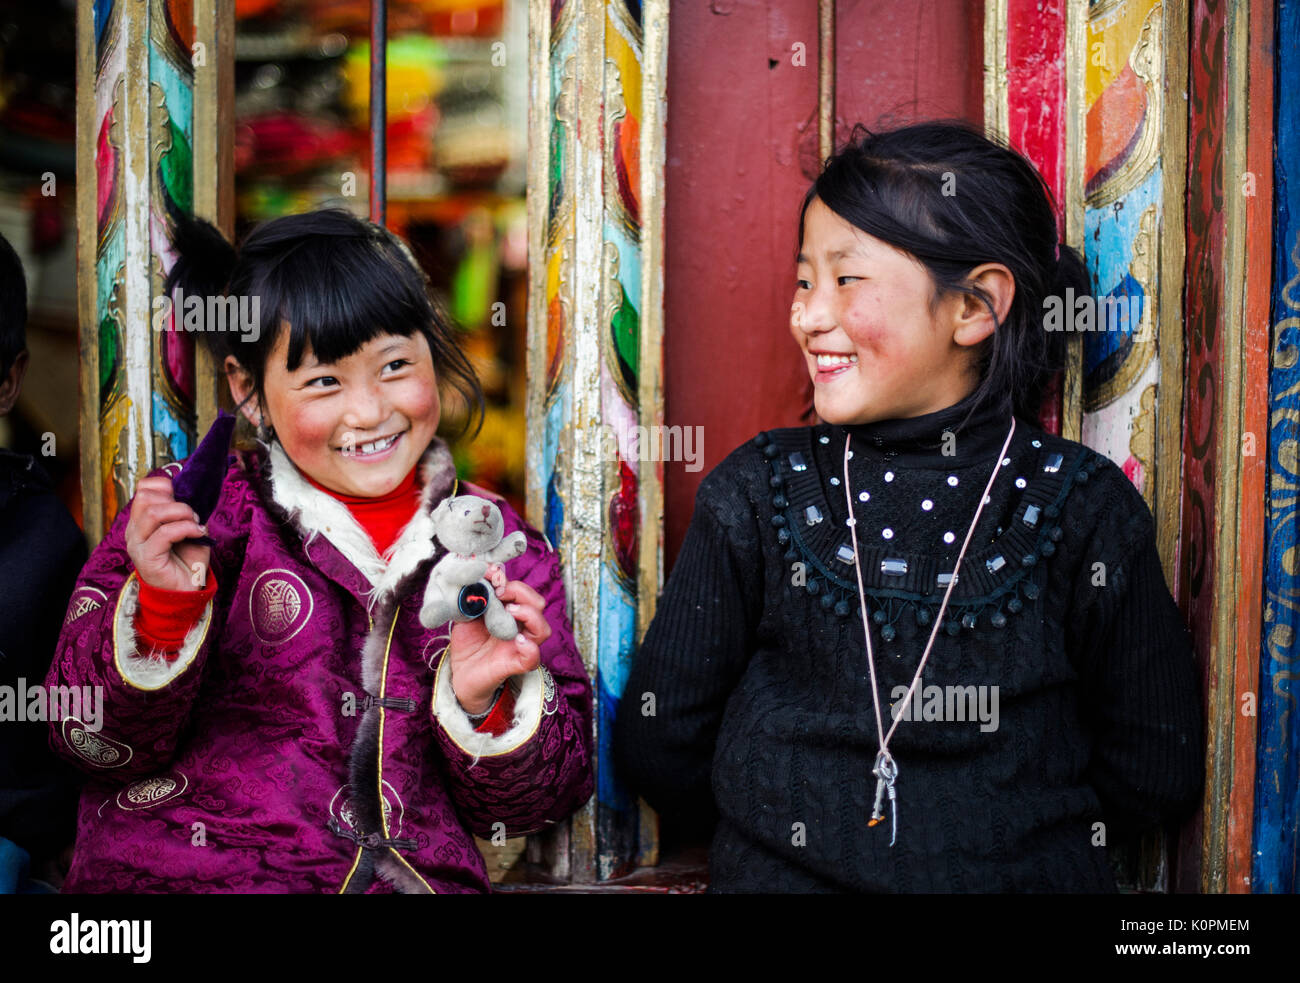 Two Tibetan kids playing at the front of a typical Tibetan decorated shop, in Kham province, Tibet - Stock Image